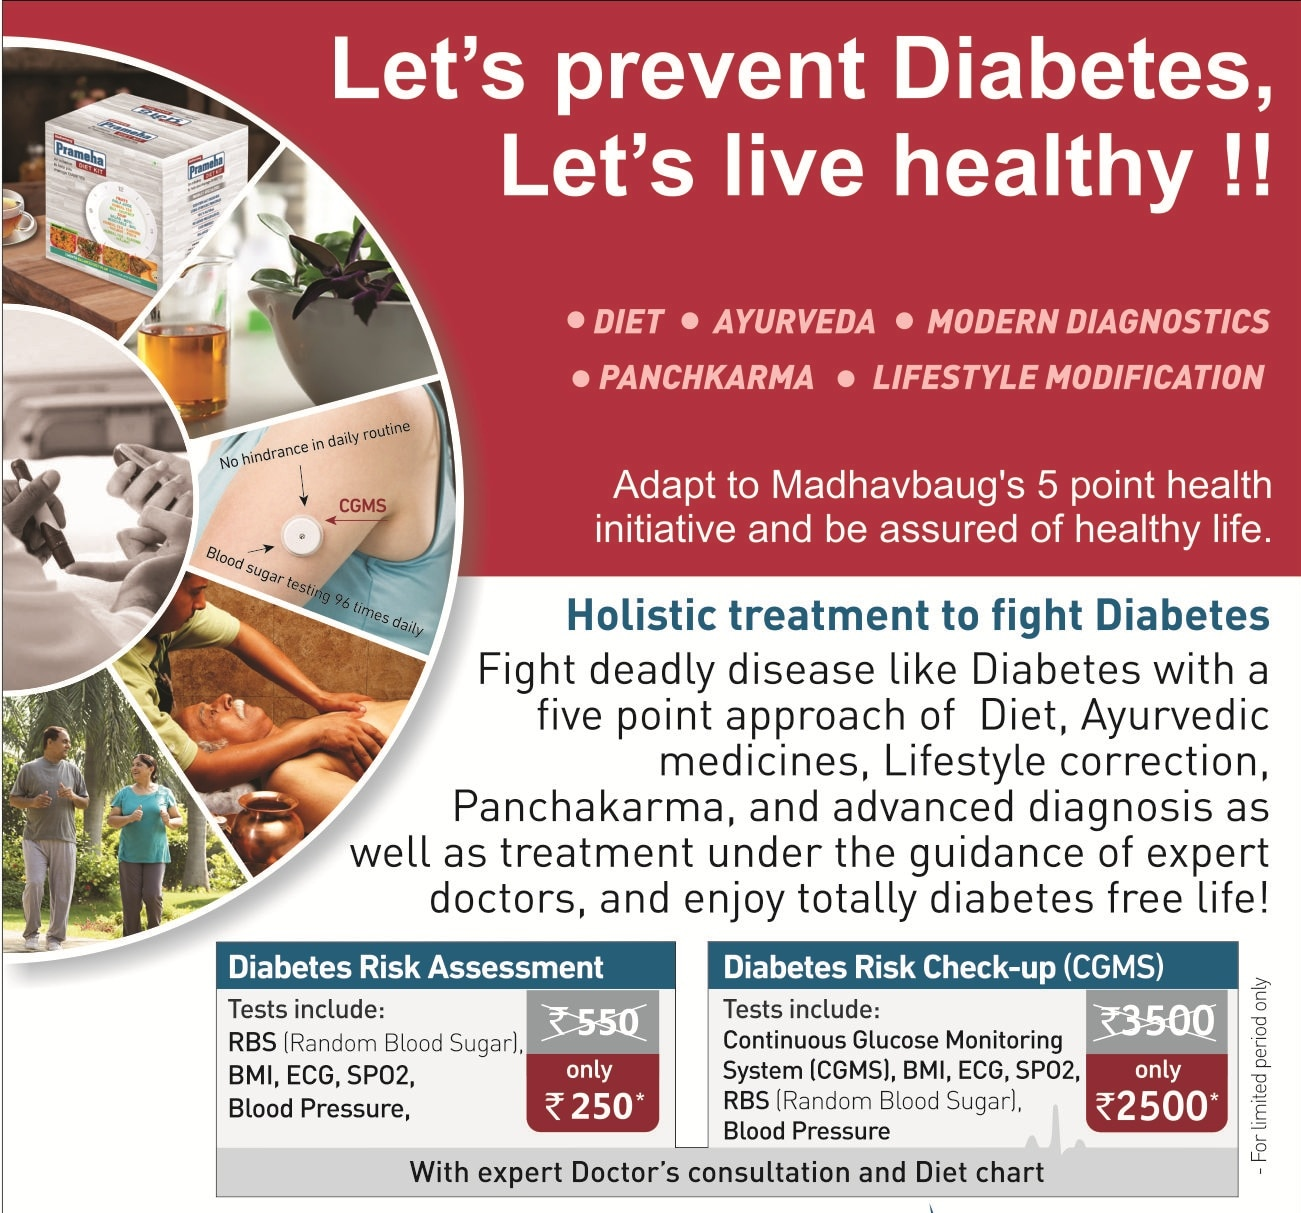 Diabetes cases in the country have increased due to drastic change in lifestyle, unhealthy eating habits and high stress levels. People with diabetes are 2 to 4 times more likely to suffer from heart disease or a stroke as compared to those who do not have diabetes. A Fasting Plasma Glucose (FPG) over 125 is indicative of diabetes while a result that is between 100 and 125 indicates prediabetes – the precursor stage before diabetes. Over 90% of newly-diagnosed diabetics are above their ideal weight. A 5-10% decrease in body weight can not only help reduce diabetes symptoms but also lowers the risk of hypertension and cardiovascular disease.  Madhavbaug's diabetes management program is based on a combination of proven Ayurvedic therapies, yoga, and lifestyle modifications. Customized exercises also help to reduce fat accumulation on pancreas, liver and muscles which reduces insulin resistance and stabilizes blood sugar levels, while Ayurvedic and yoga treatments support the insulin production and reduce insulin resistance. Madhavbaug's programs for diabetes has helped reverse diabetes symptoms for several patients who enjoy a full and healthy life today.    About Diabetes Management Program   Madhavbaug's ApexBeat programs allow specialists to use cutting-edge technology to recommend specialized diets, physiotherapy, and lifestyle modifications to patients in order to offset the risk of heart disease. The main focus is reducing blood sugar levels to a healthy range of 4.0 to 6.0 mmol/L at fasting.  There are 3 main Diabetes Management Programs.  Comprehensive Diabetic Care Program empowers patients to control blood sugar and prevent further complications.  The Diabetes Complication Management Program (pre-failure) is for diabetic patients with early warning signs of heart disease wherein experts impart self-management techniques to control blood sugar levels and prevent heart failure.  The Diabetes Complication Management Program (pre-ischemia) caters to diabetic pat